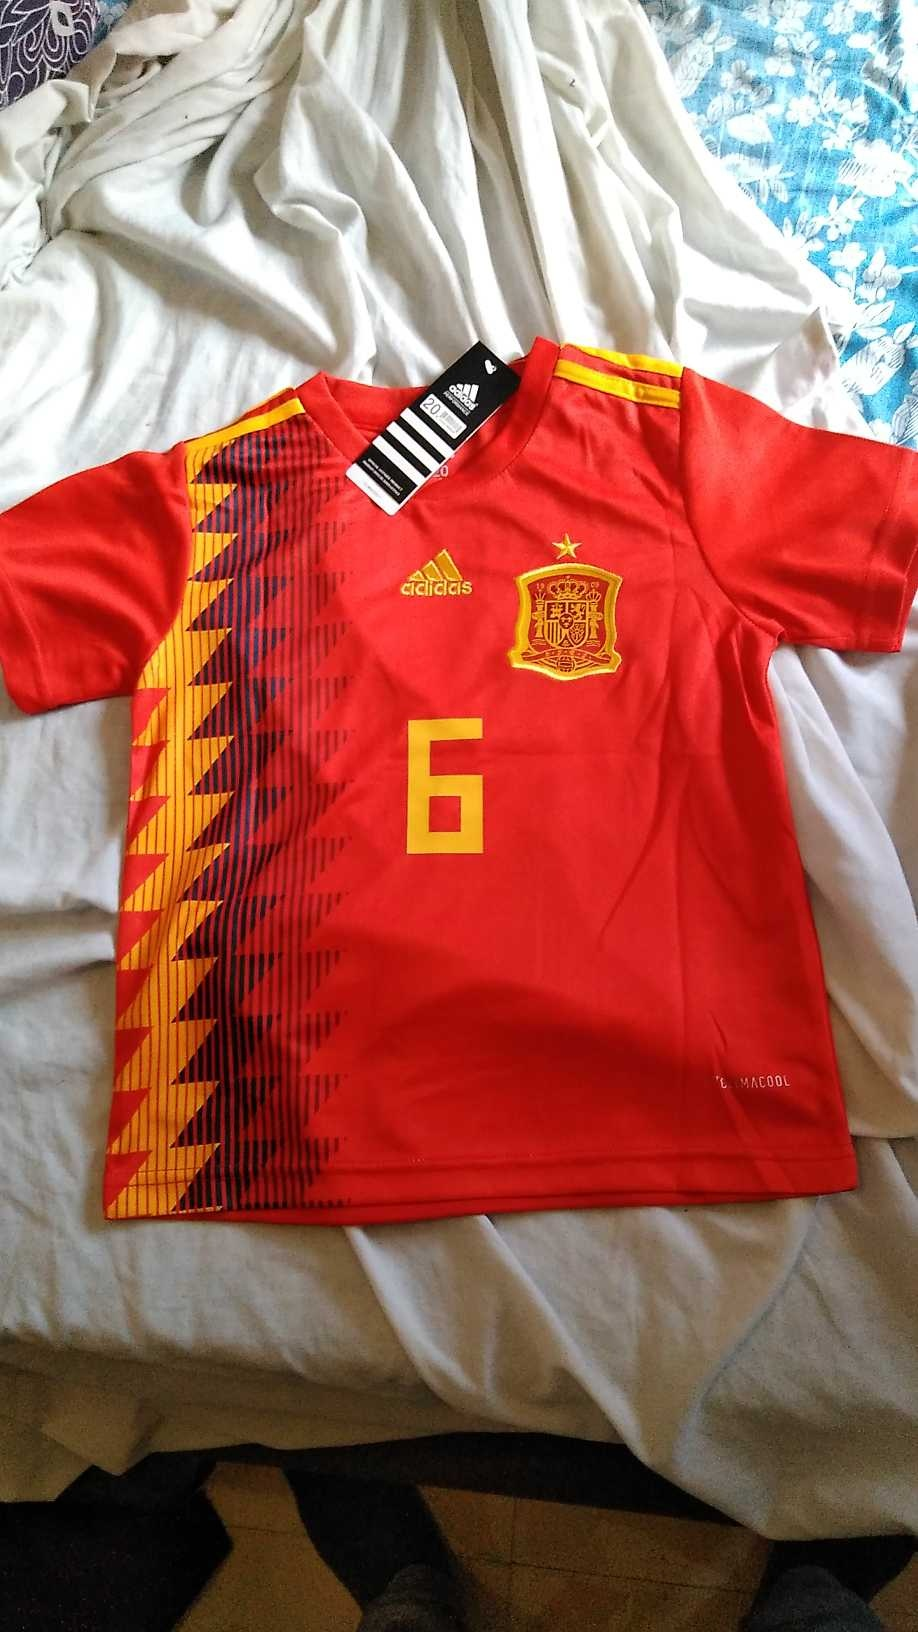 03f2bc760 Here is a complete list of best sellers of replica football soccer World  Cup jerseys shirts  2018 World Cup Jersey Replica Football Kit – Cheap and  Good ...